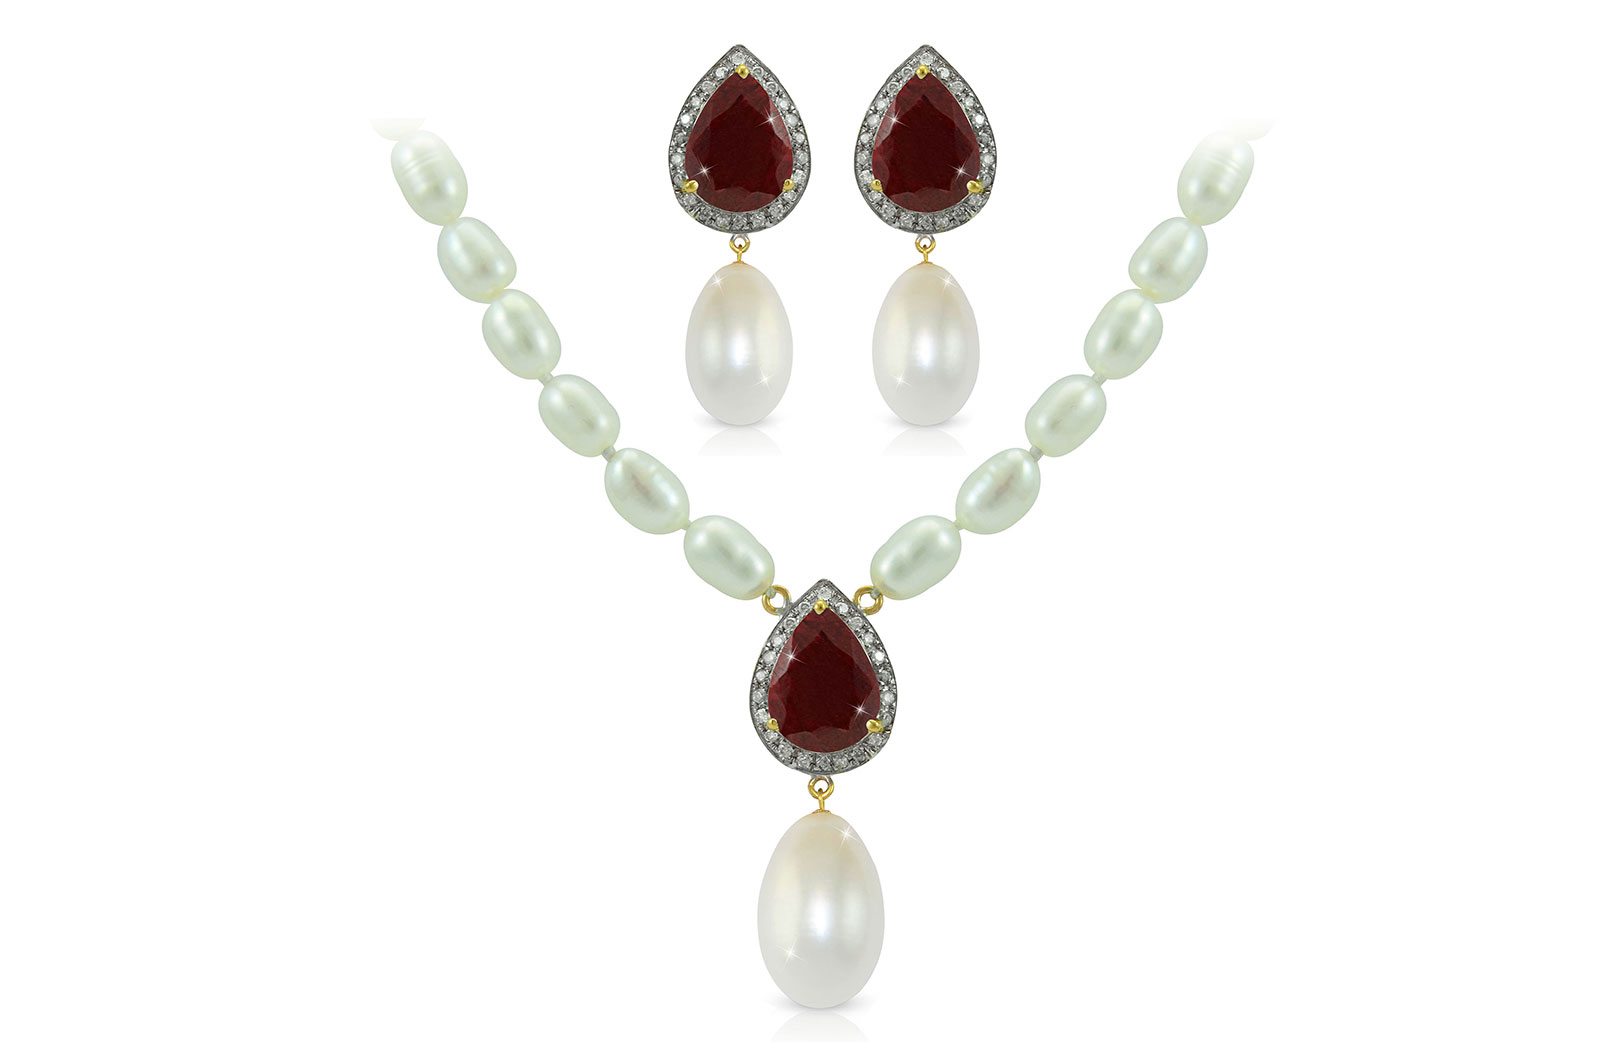 Vera Perla 18K Gold 0.36ct Diamonds, Royal Indian Ruby and 13mm Pearl 2 pcs set